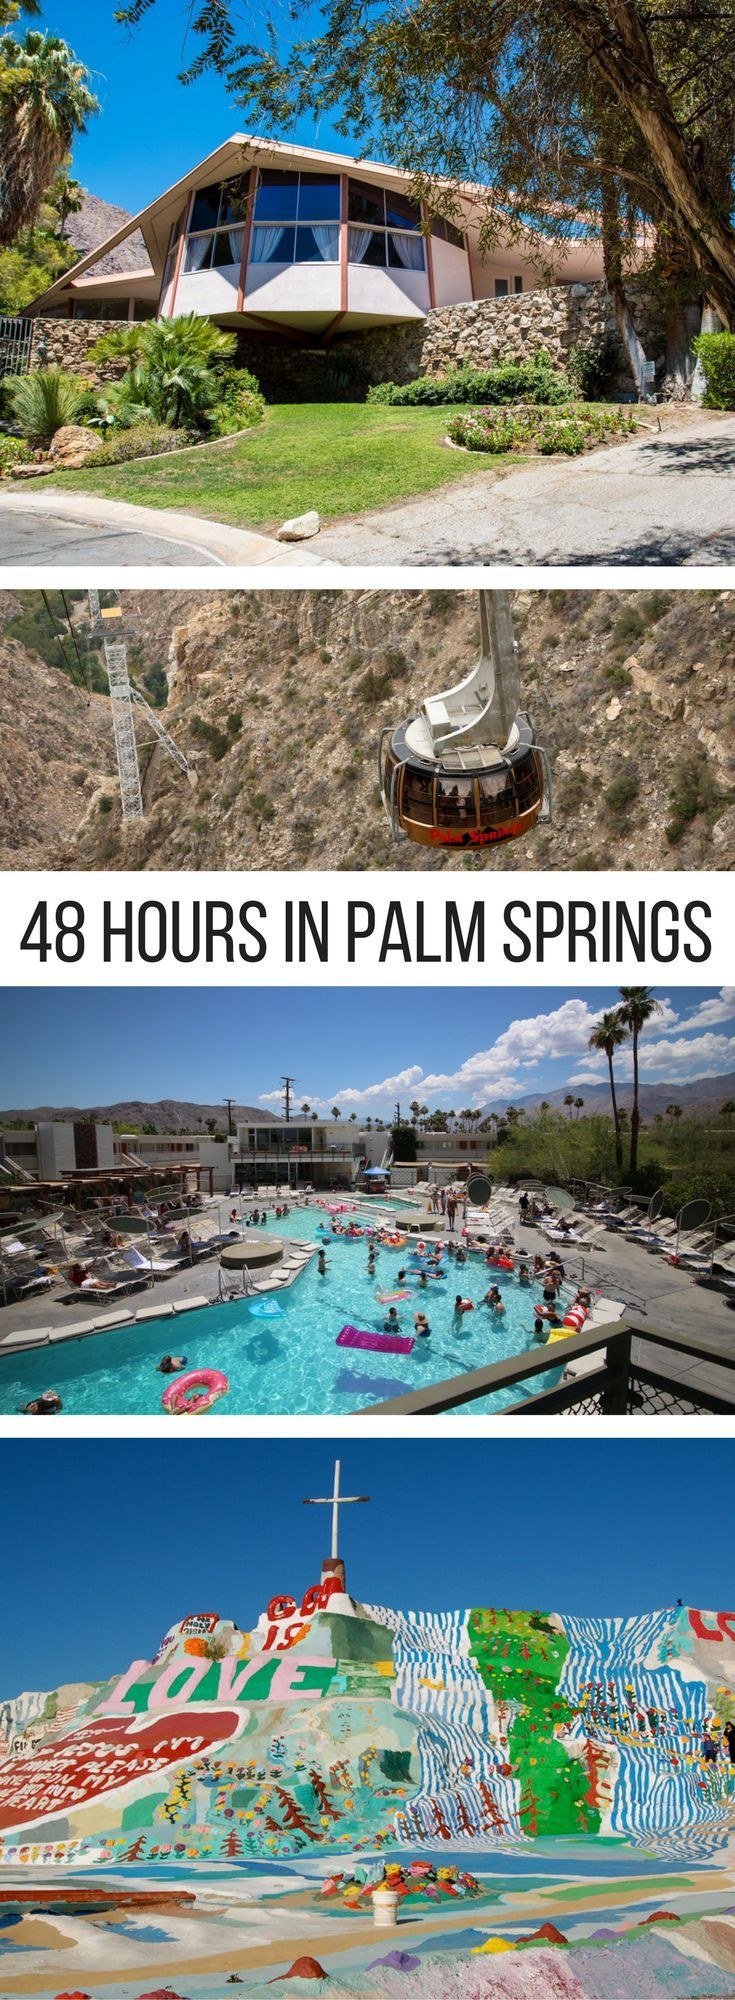 Hot springs, folk art, and Elvis: 48 Hours in Palm Springs